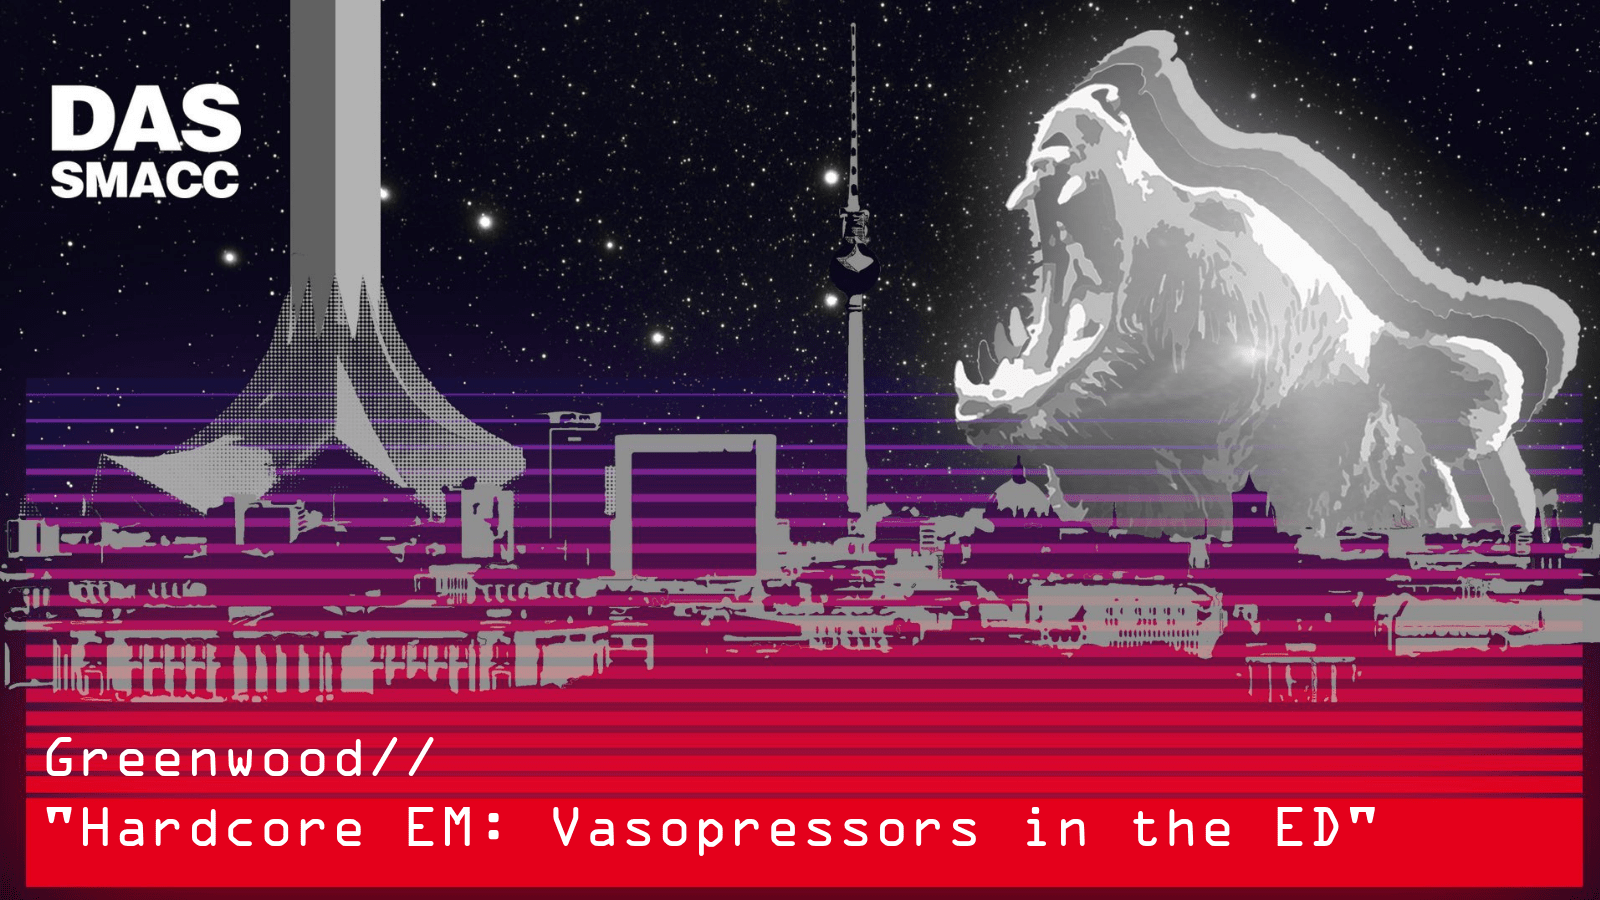 Vasopressors in the ED